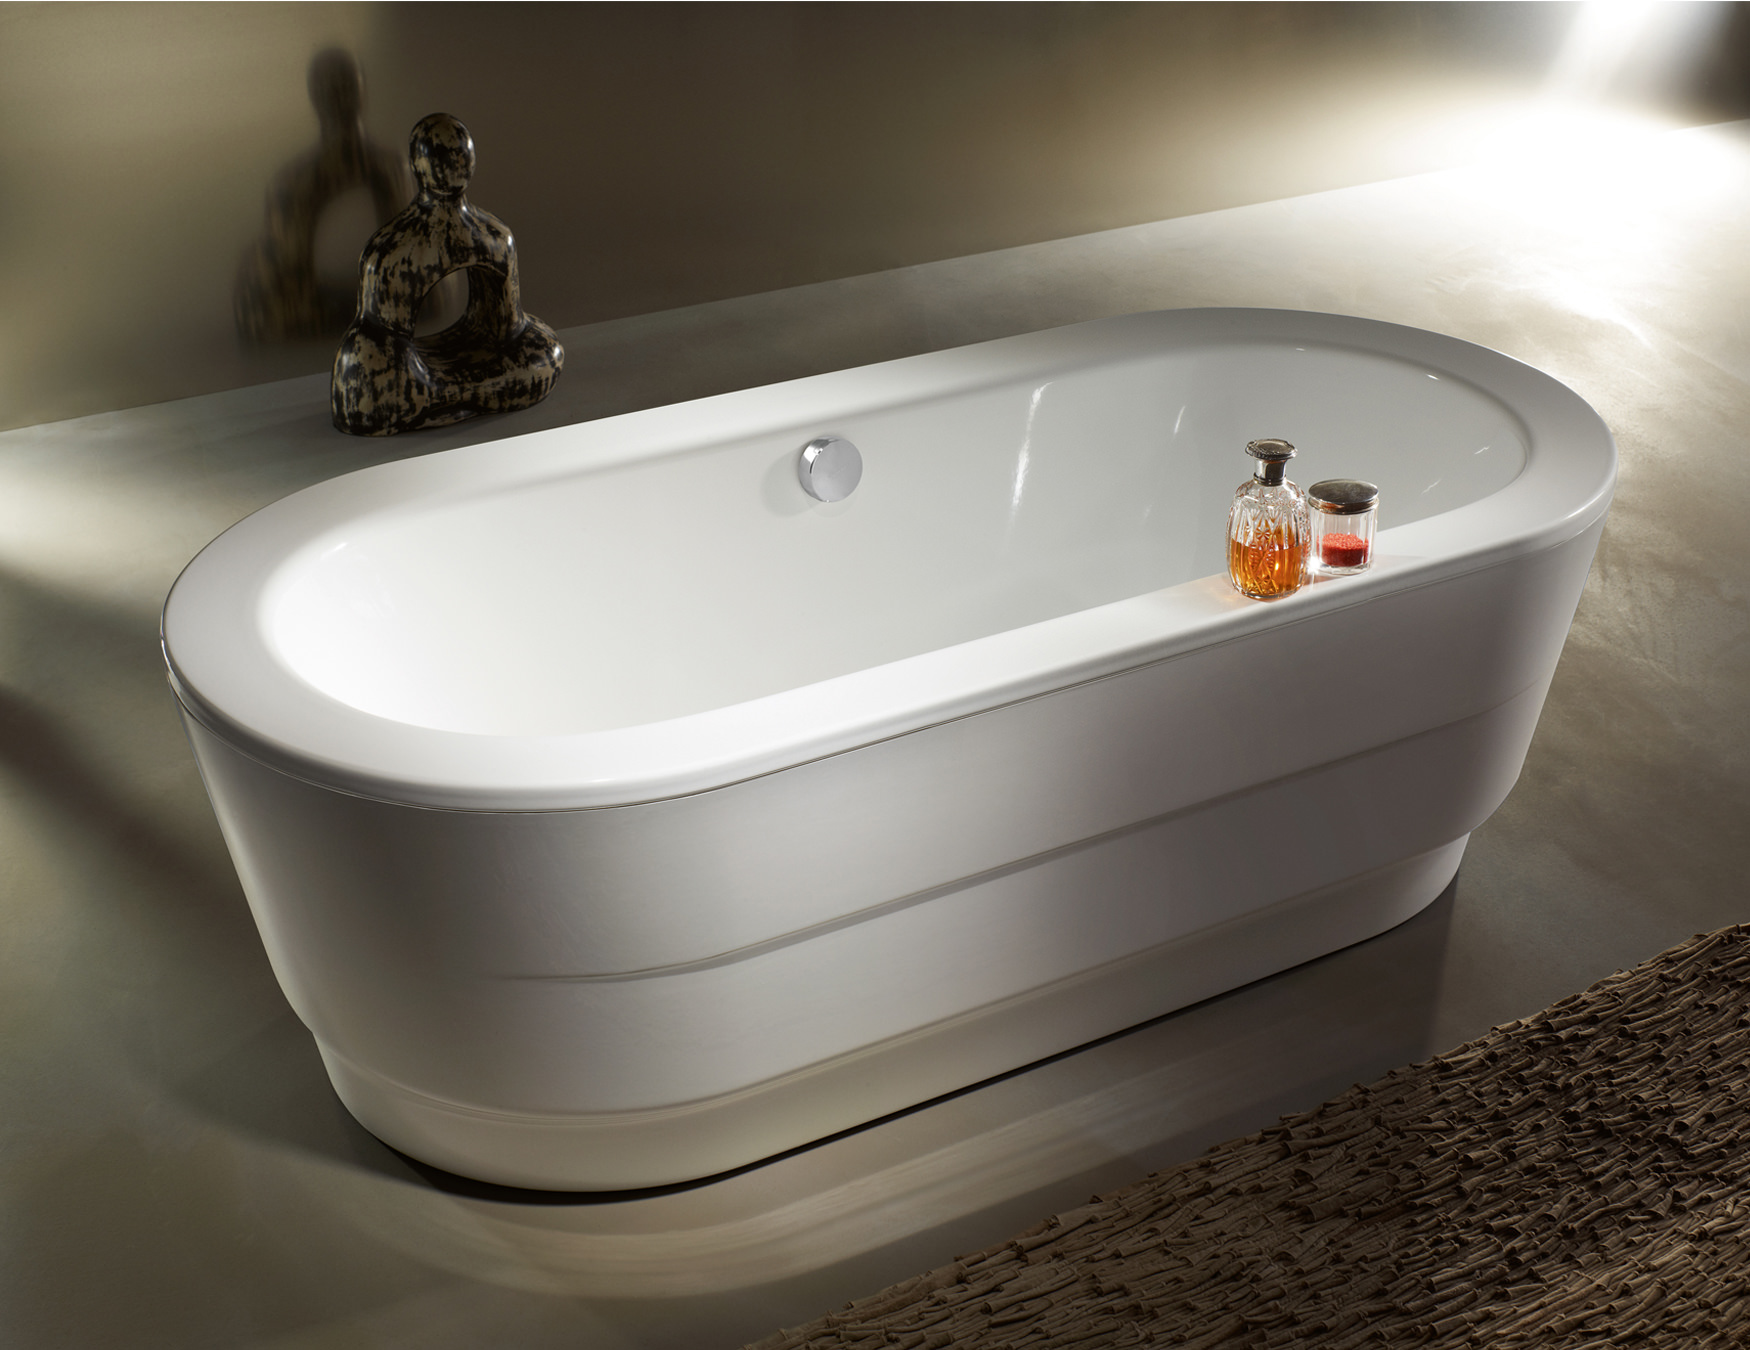 Kaldewei classic duo oval wide 115 7 freestanding steel bath for How wide is a bathtub